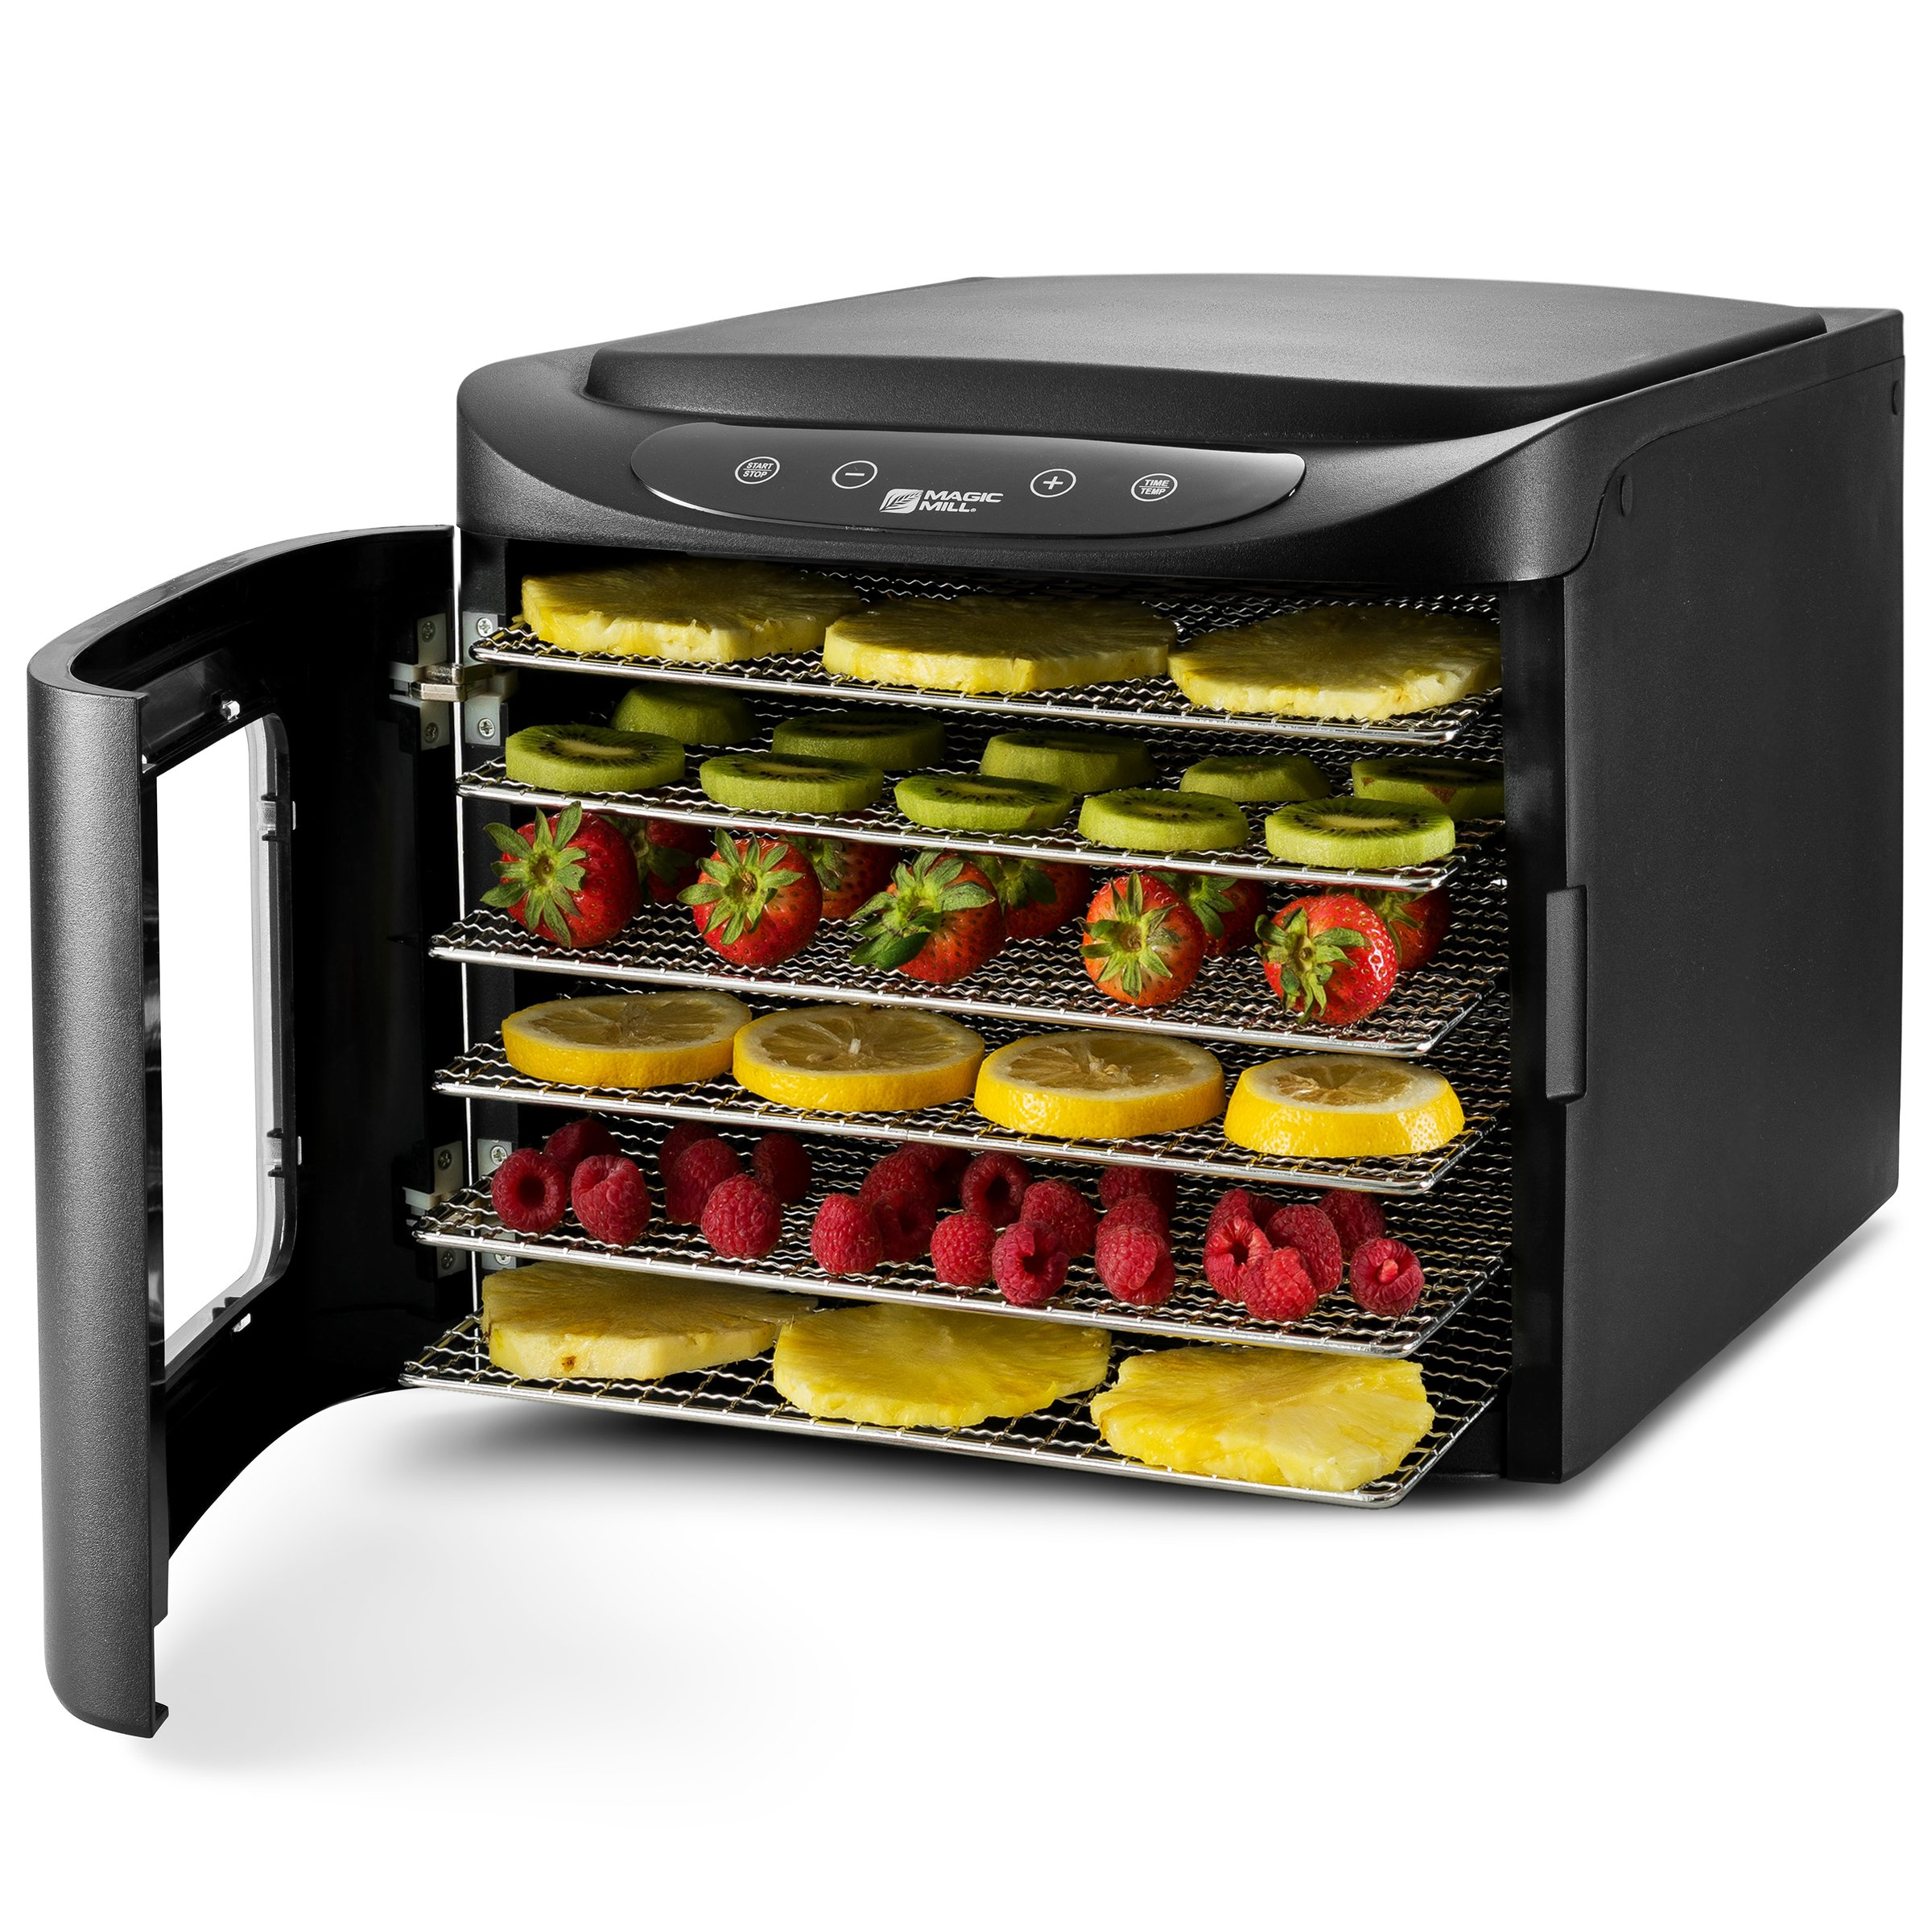 Magic Mill Food Dehydrator Machine - Easy Setup, Digital Adjustable Timer and Temperature Control | Dryer for Jerky, Herb, Meat, Beef, Fruit and To Dry Vegetables | Over Heat Protection | 6 Stainless Steel trays by Magic Mill (Image #1)